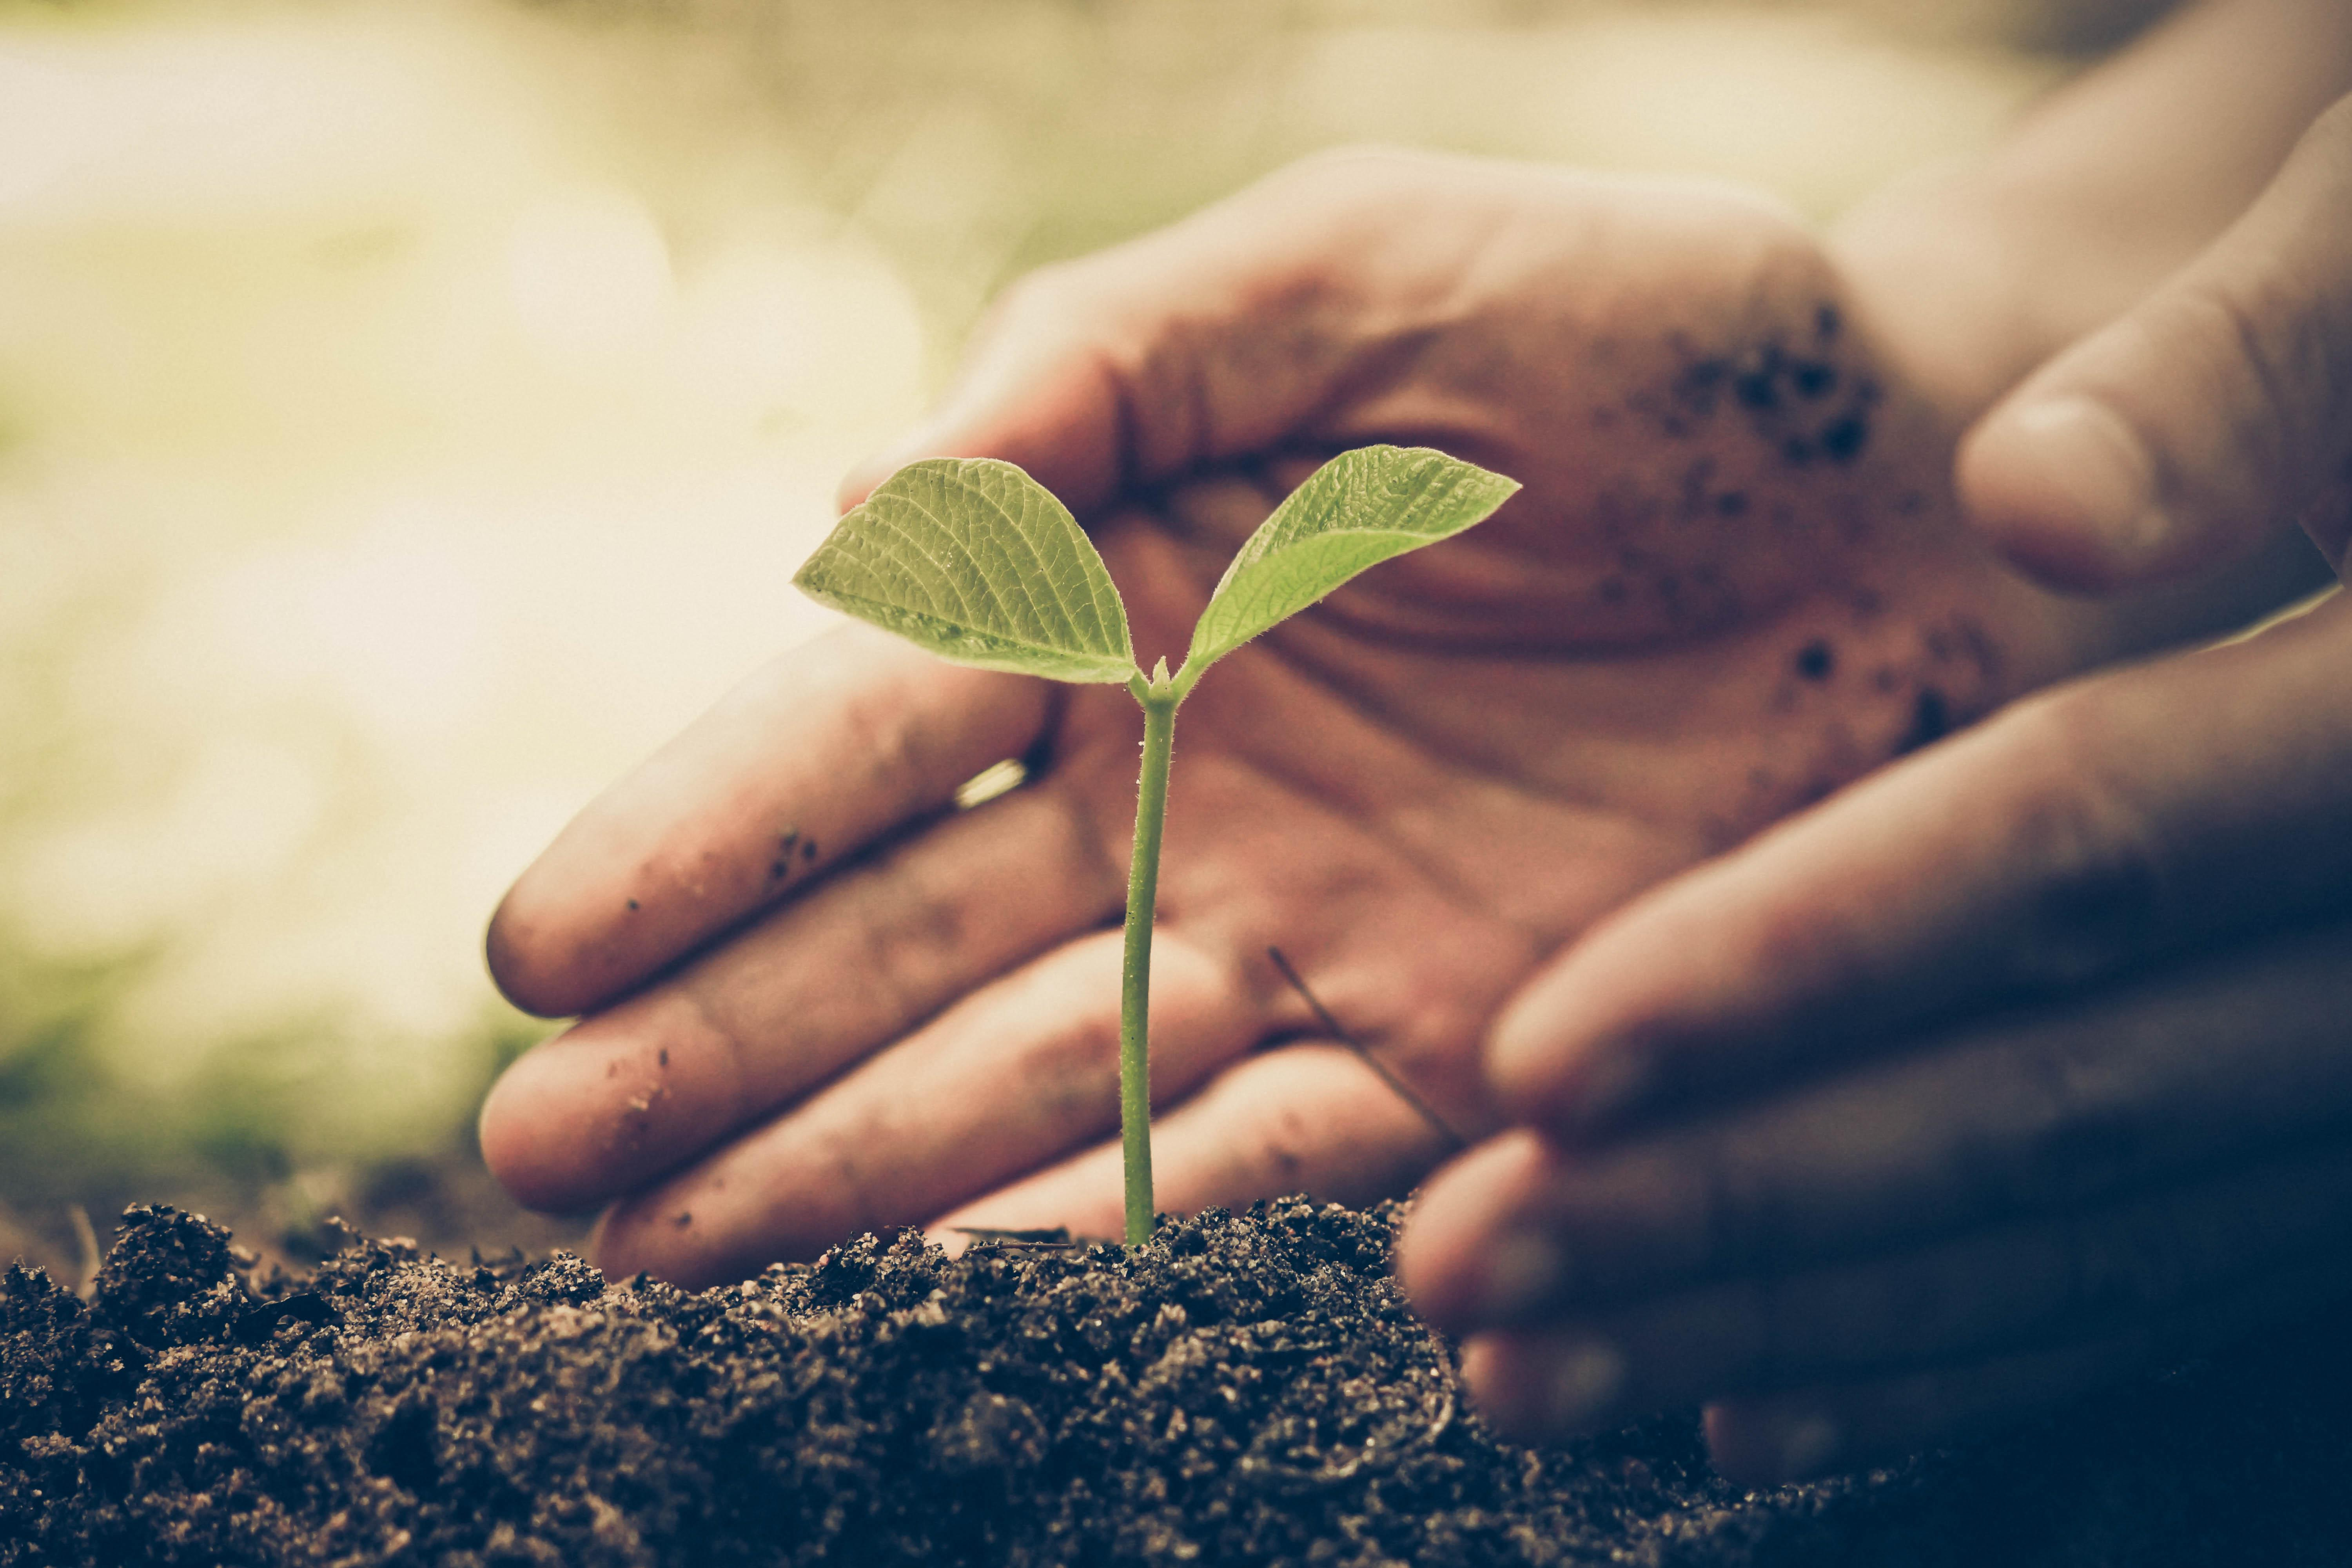 Getting Down to Earth: Caring for our patients AND our planet